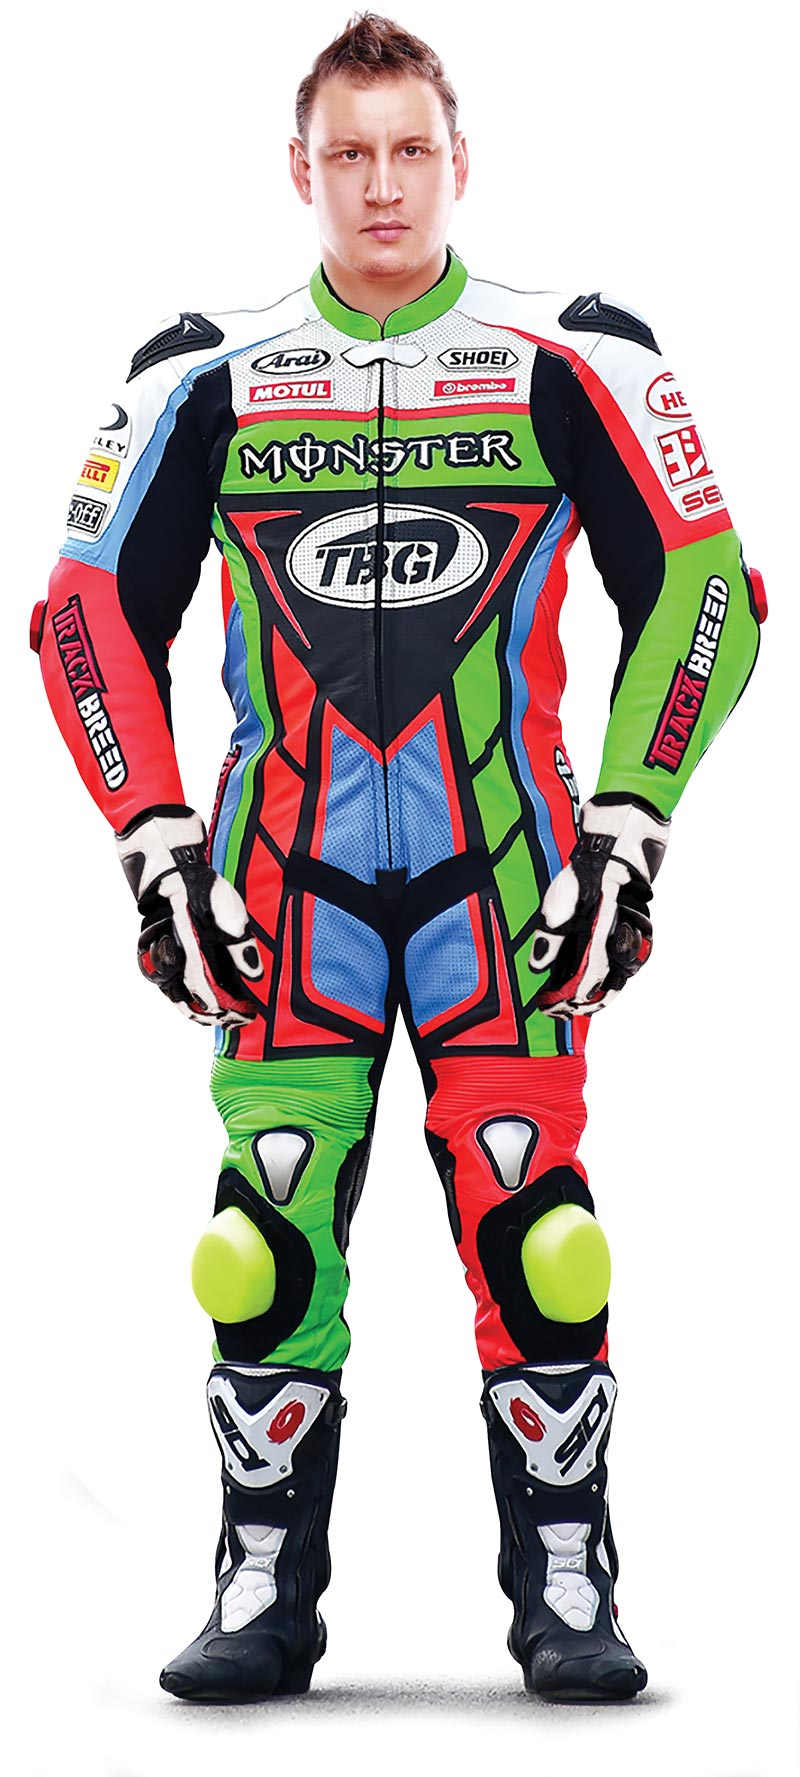 Man wearing one-piece motorcycle suit